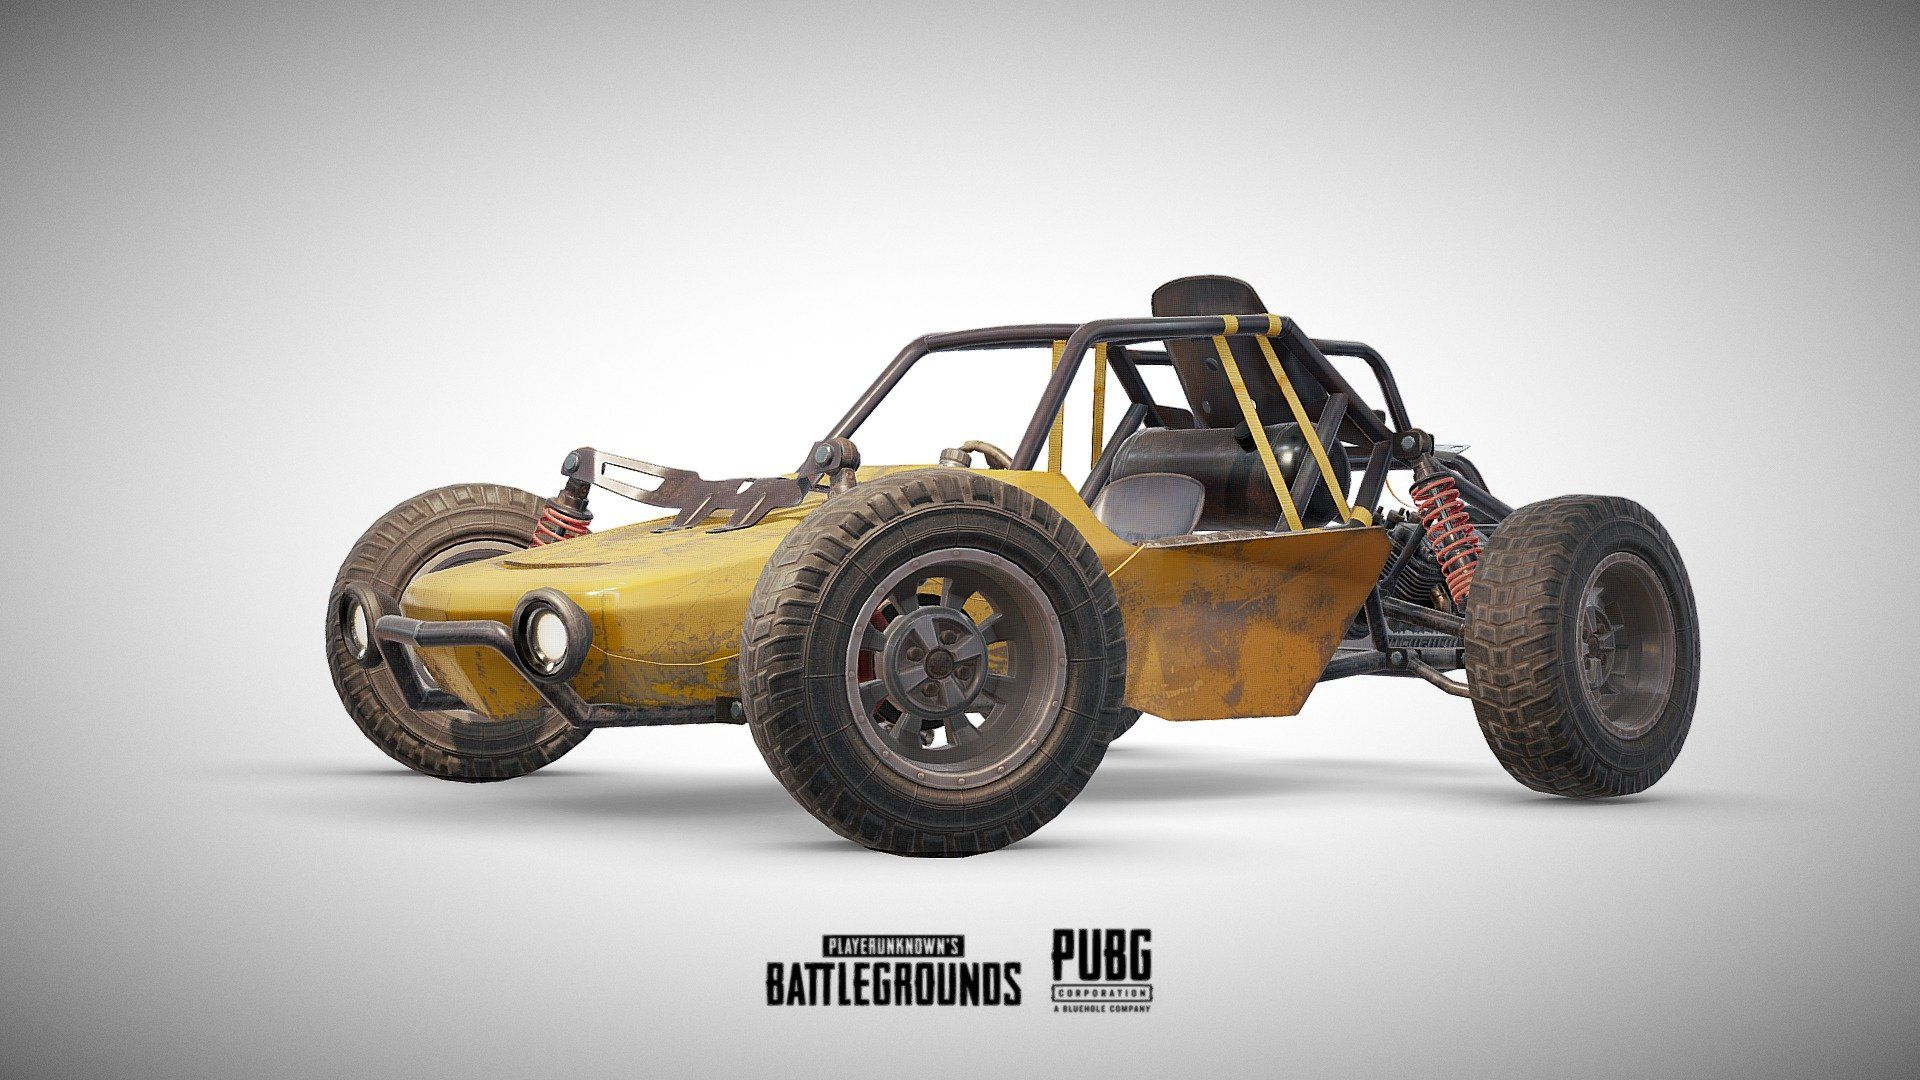 Buggy Model For Playerunknown S Battlegrounds Game Website Buggy Oneplus Wallpapers Flying Bird Silhouette